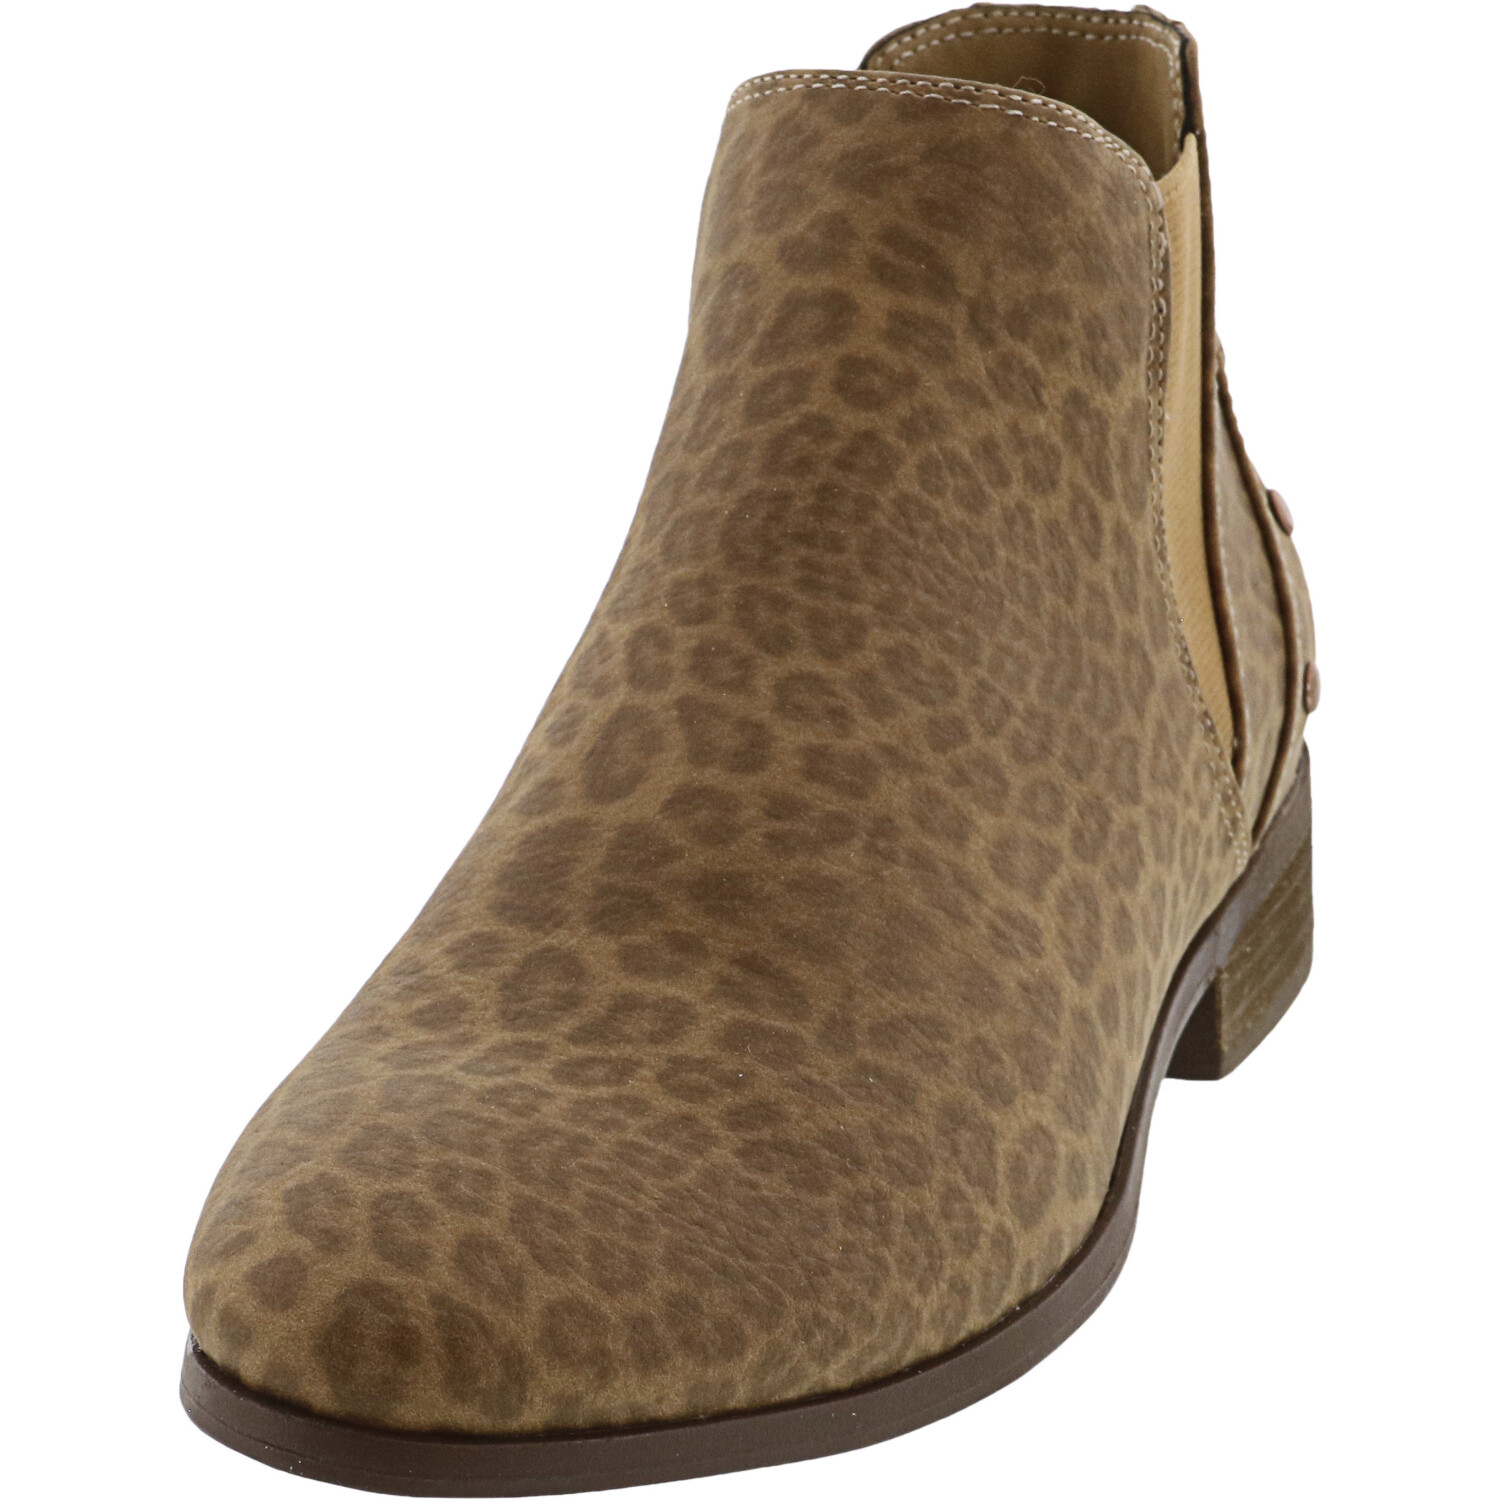 Roxy Women's Yates Spotted Ankle-High Chelsea - 5.5M